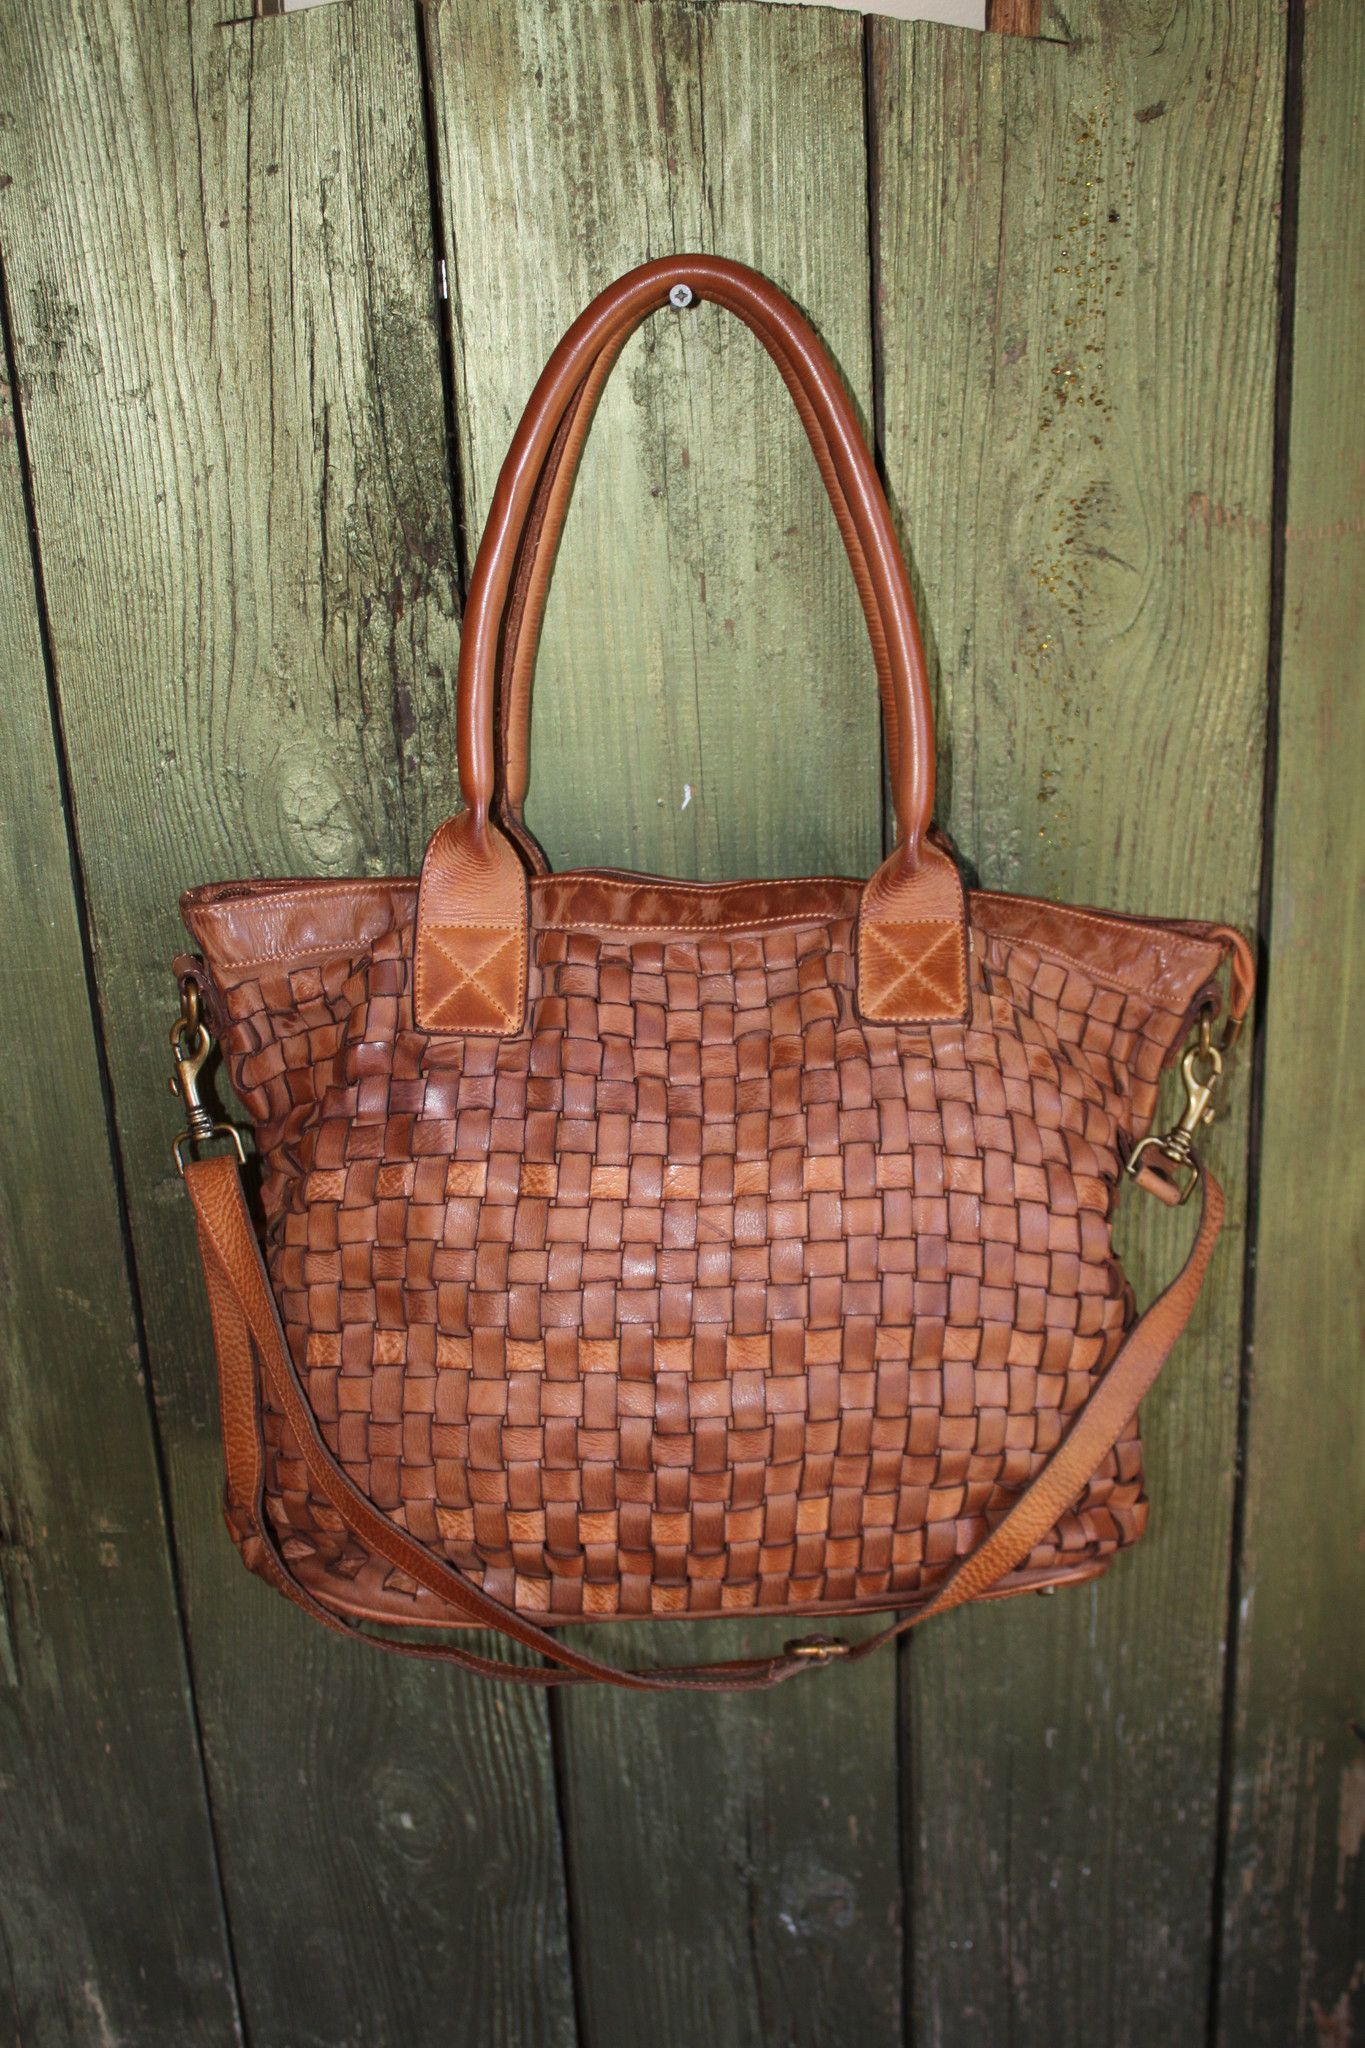 62e245ef3e Soft Camel Color Italian Woven Leather Handbag